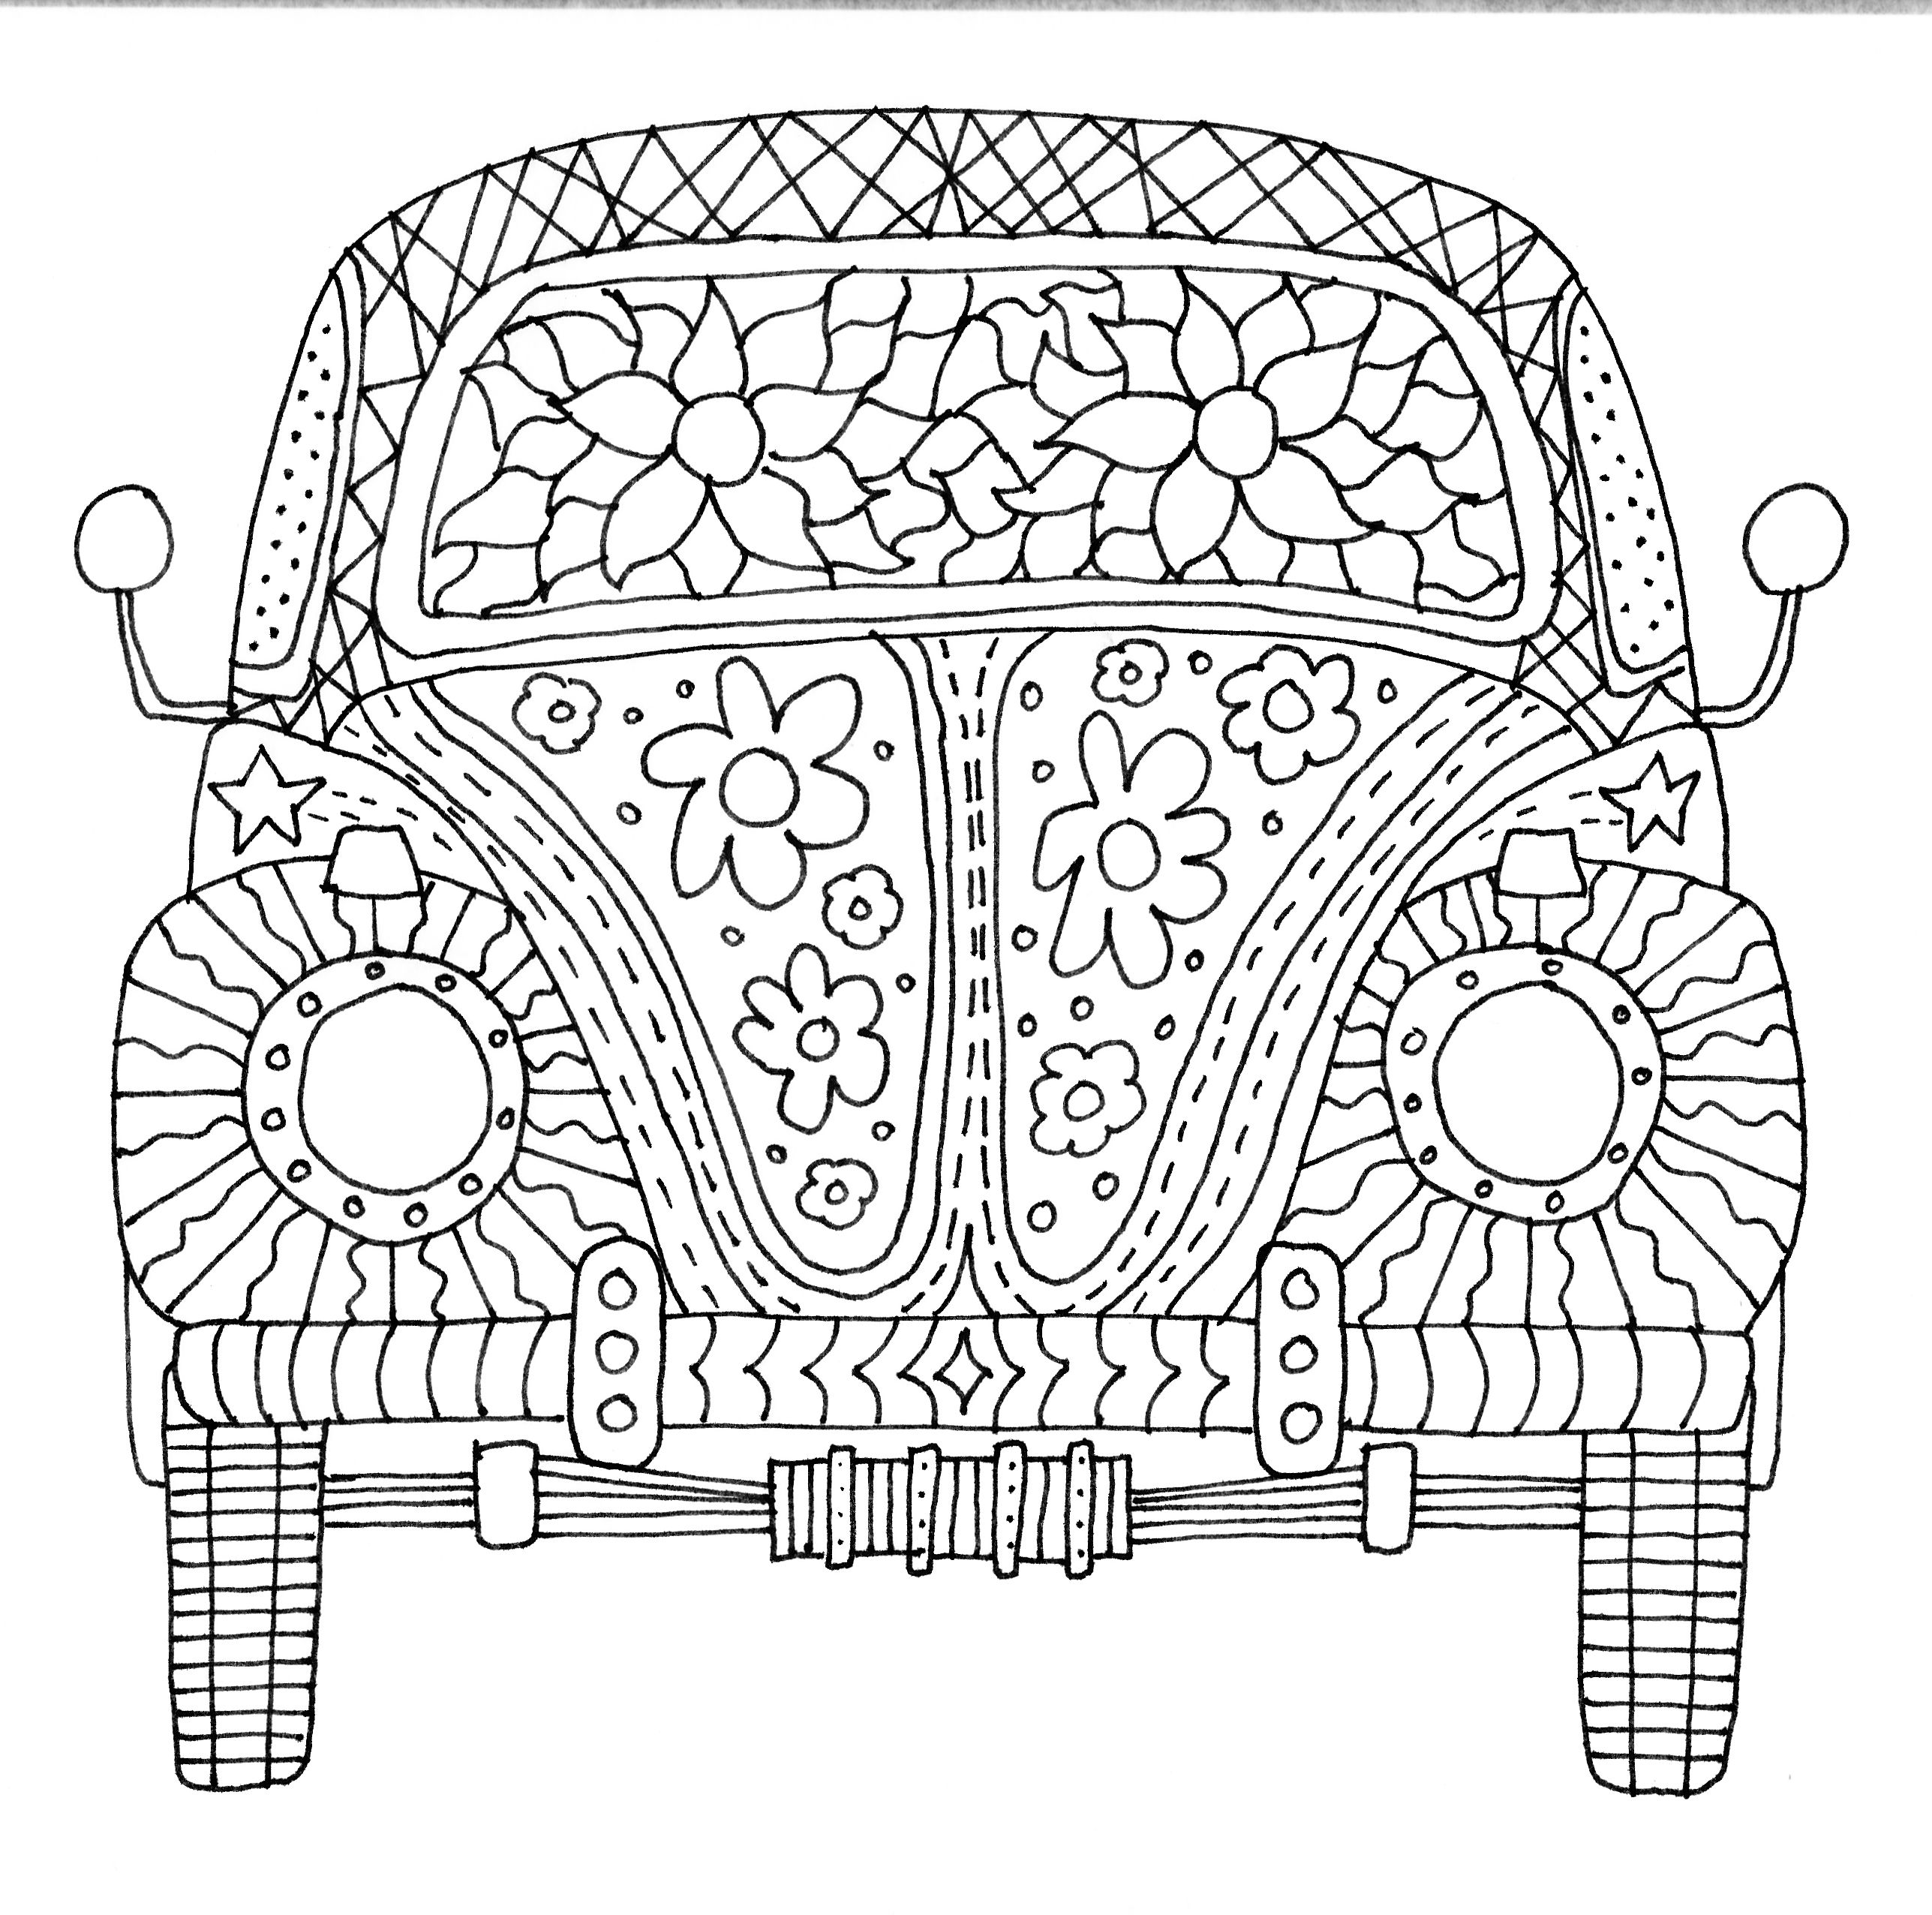 Herbie The Love Bug Volkswagen Vw Coloring Page Free